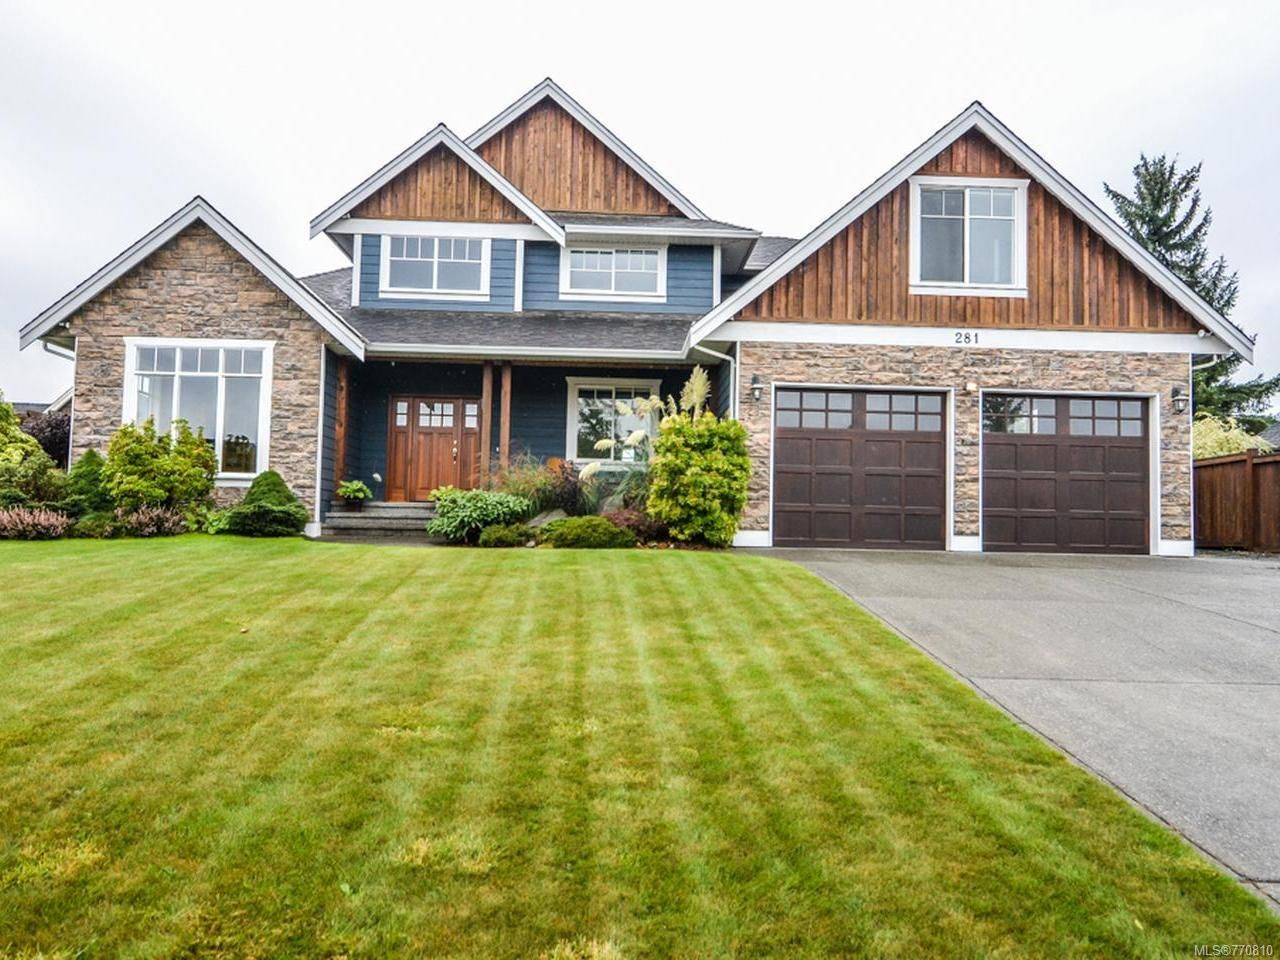 Main Photo: 281 VIRGINIA DRIVE in CAMPBELL RIVER: CR Willow Point House for sale (Campbell River)  : MLS®# 770810